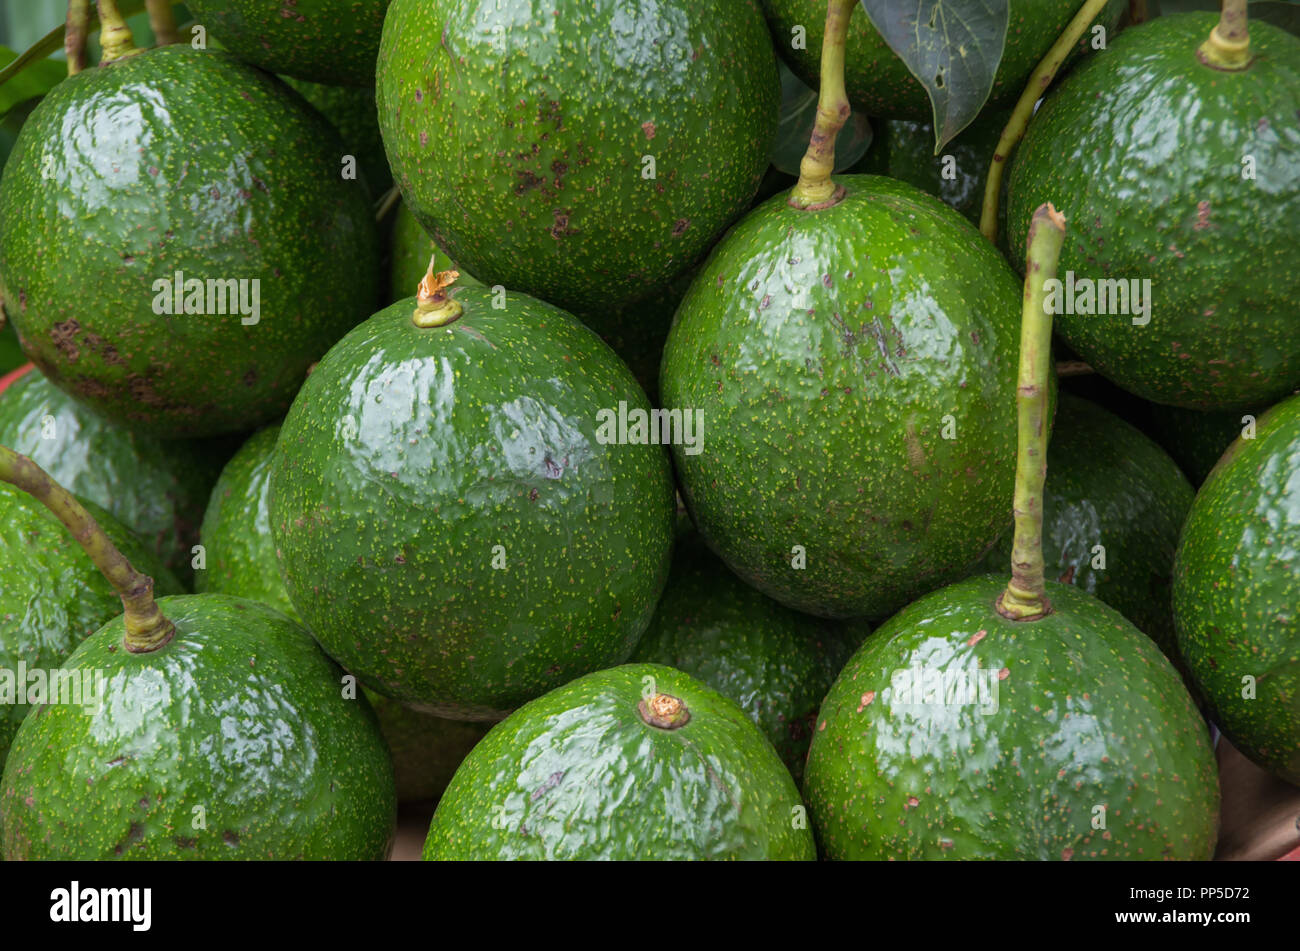 Background with avocados fruit in the asia market, picture use for design, advertising, marketing, business and printing - Stock Image